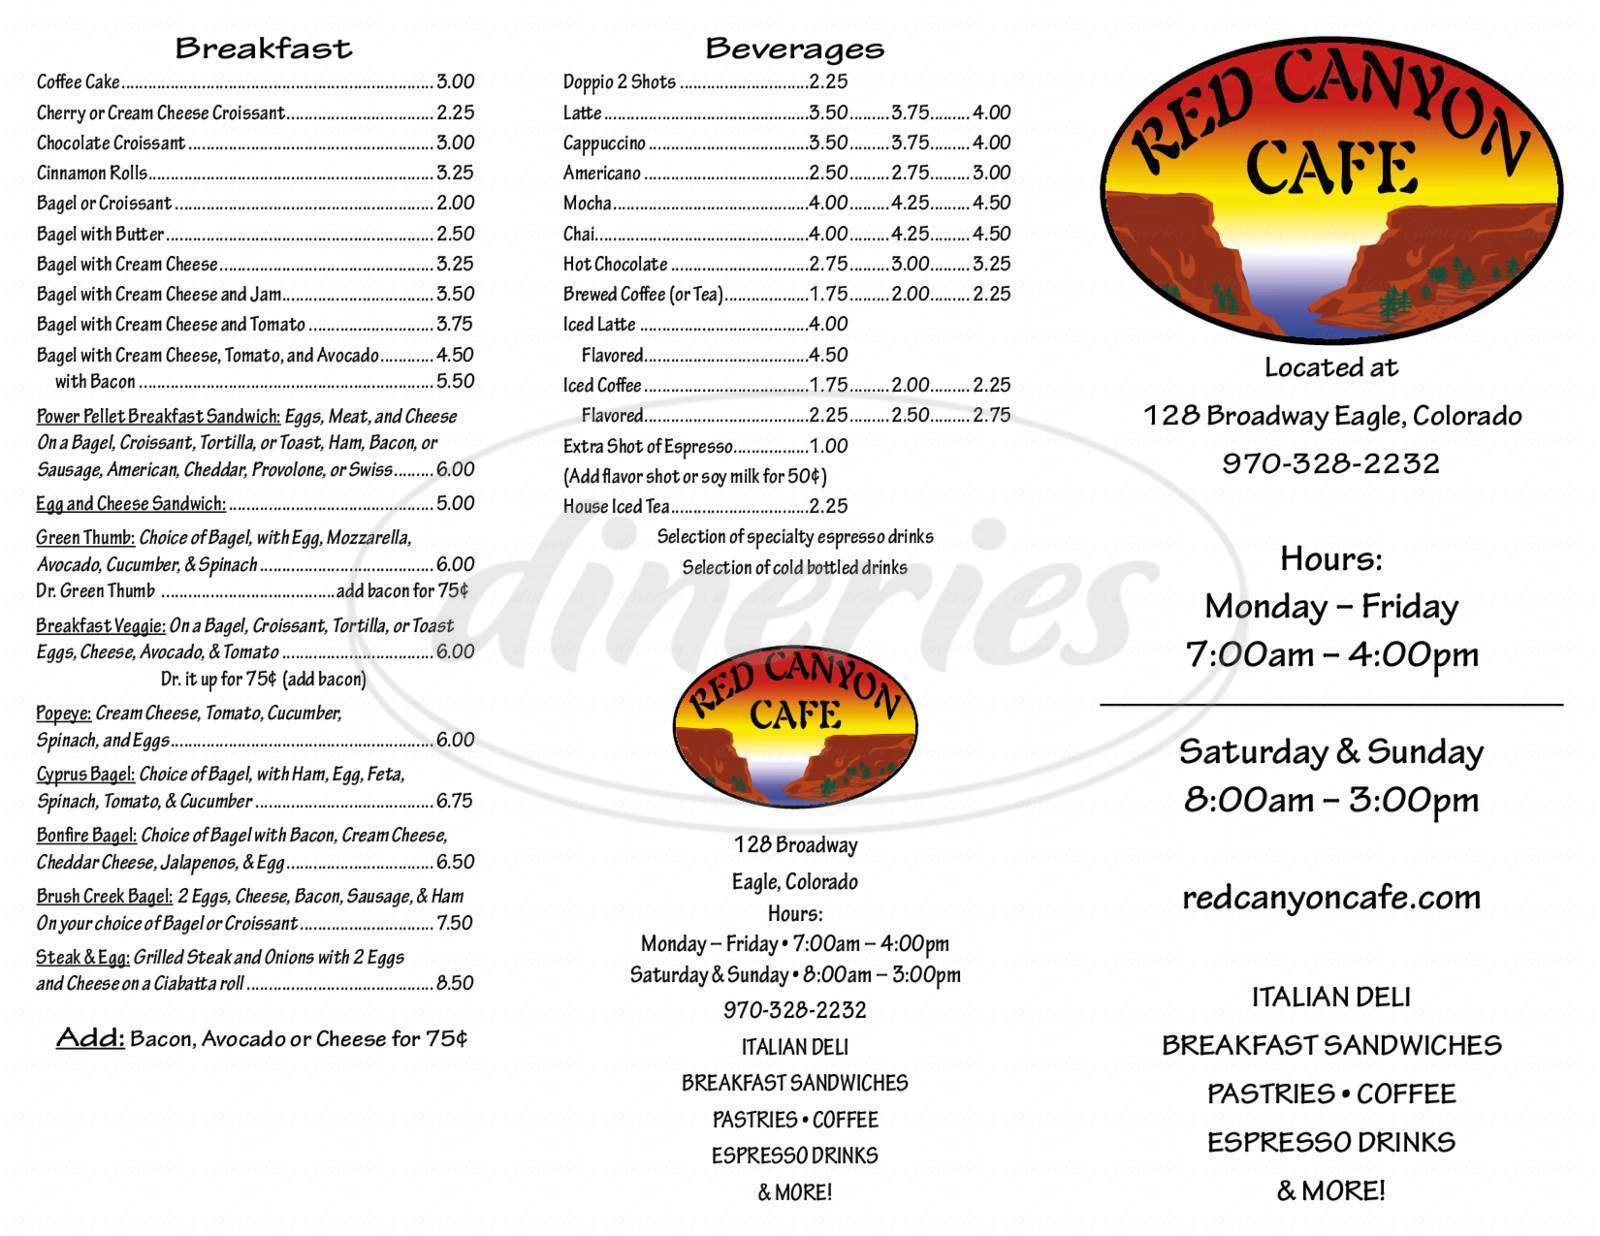 menu for Red Canyon Cafe